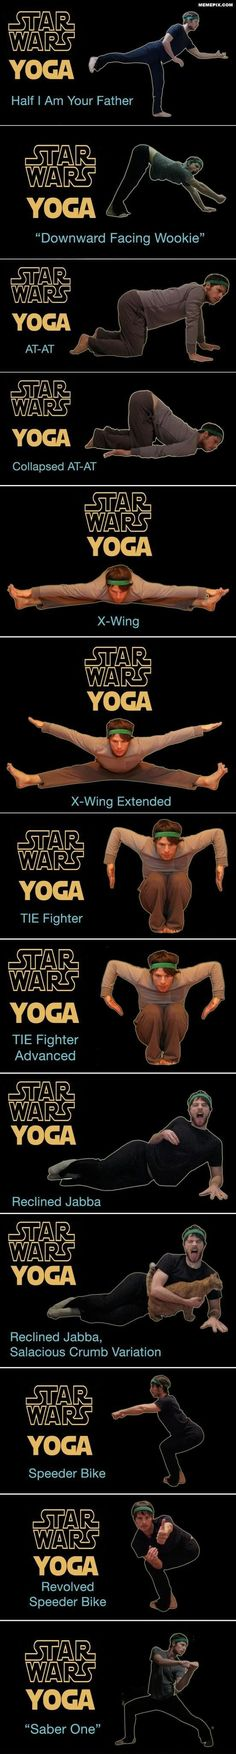 Star Wars Yoga!@Martha Murphy for shaun too haha